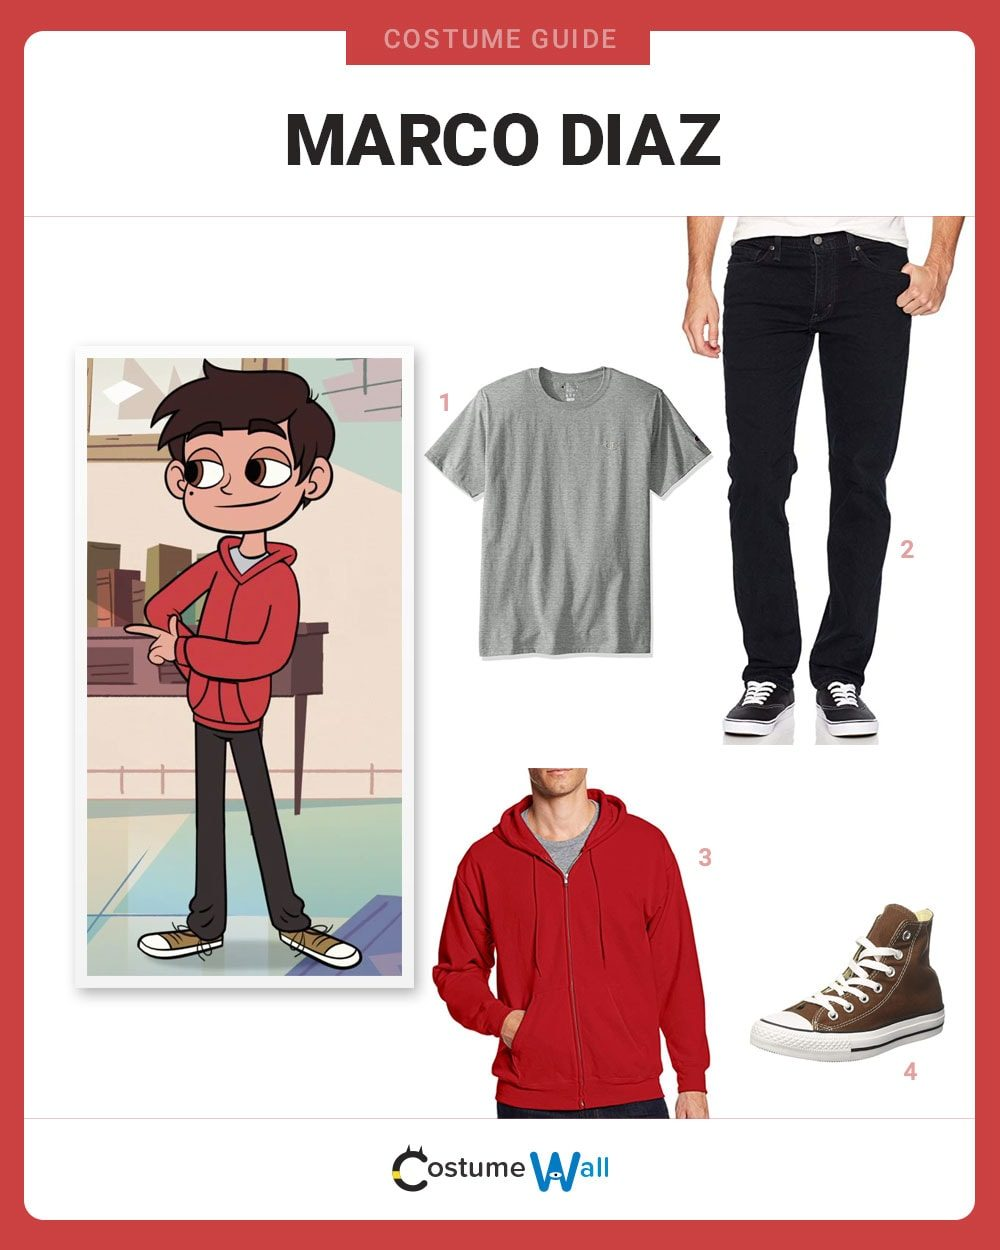 Marco Diaz Costume Guide